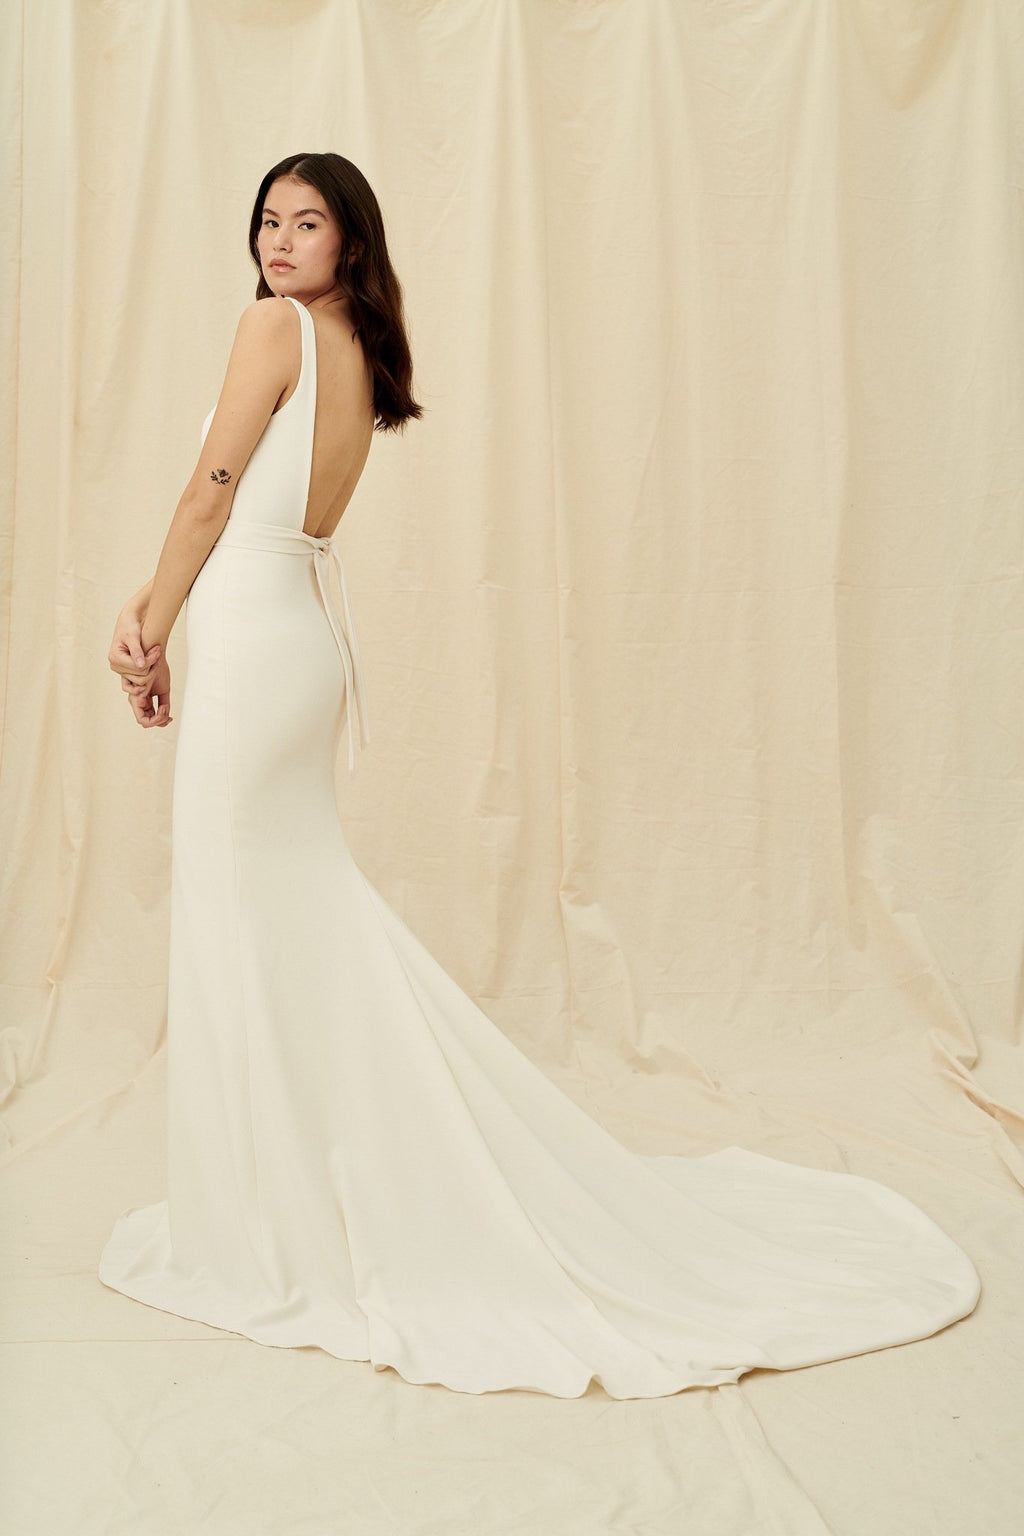 Minimalist crepe wedding dress with a square open back and a long train